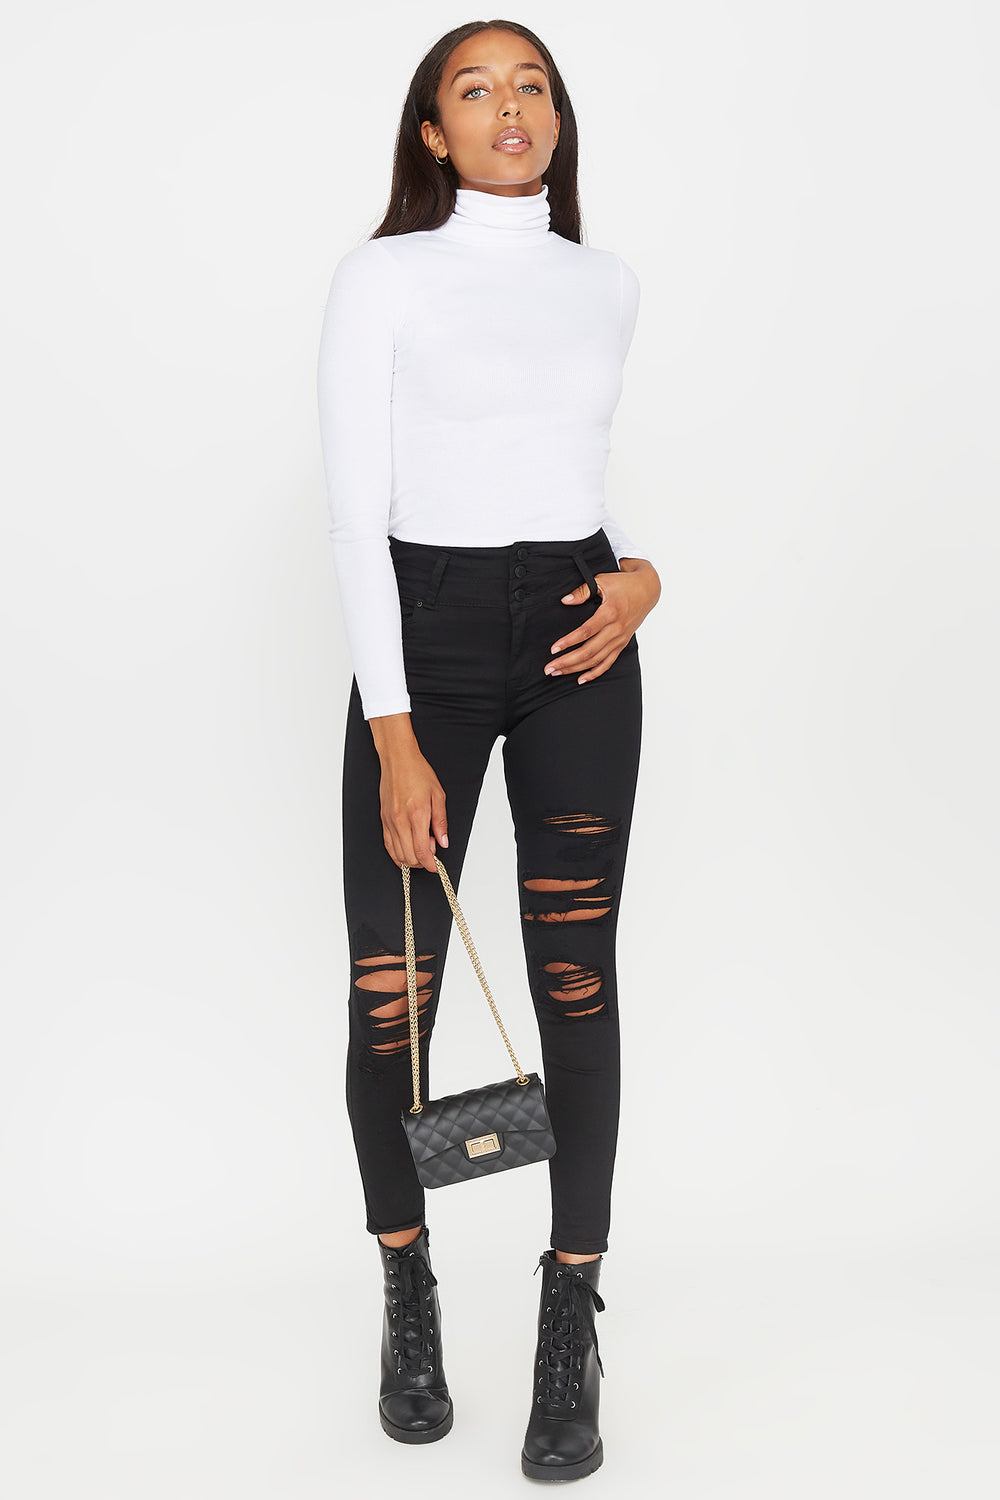 3-Tier High-Rise Push Up Distressed Skinny Jean Black